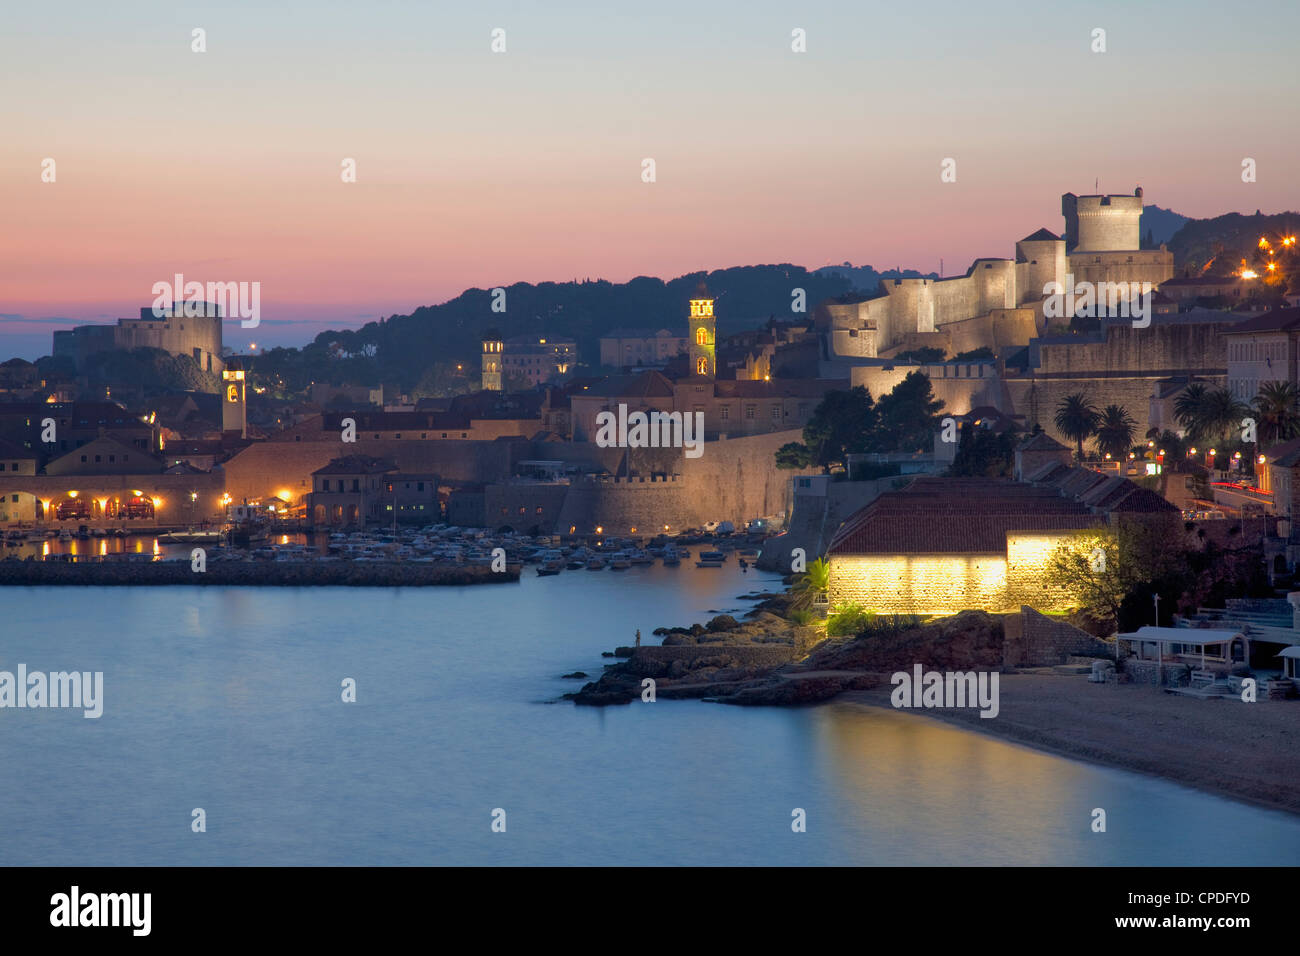 View of Old Town in the early evening, UNESCO World Heritage Site, Dubrovnik, Croatia, Europe Stock Photo